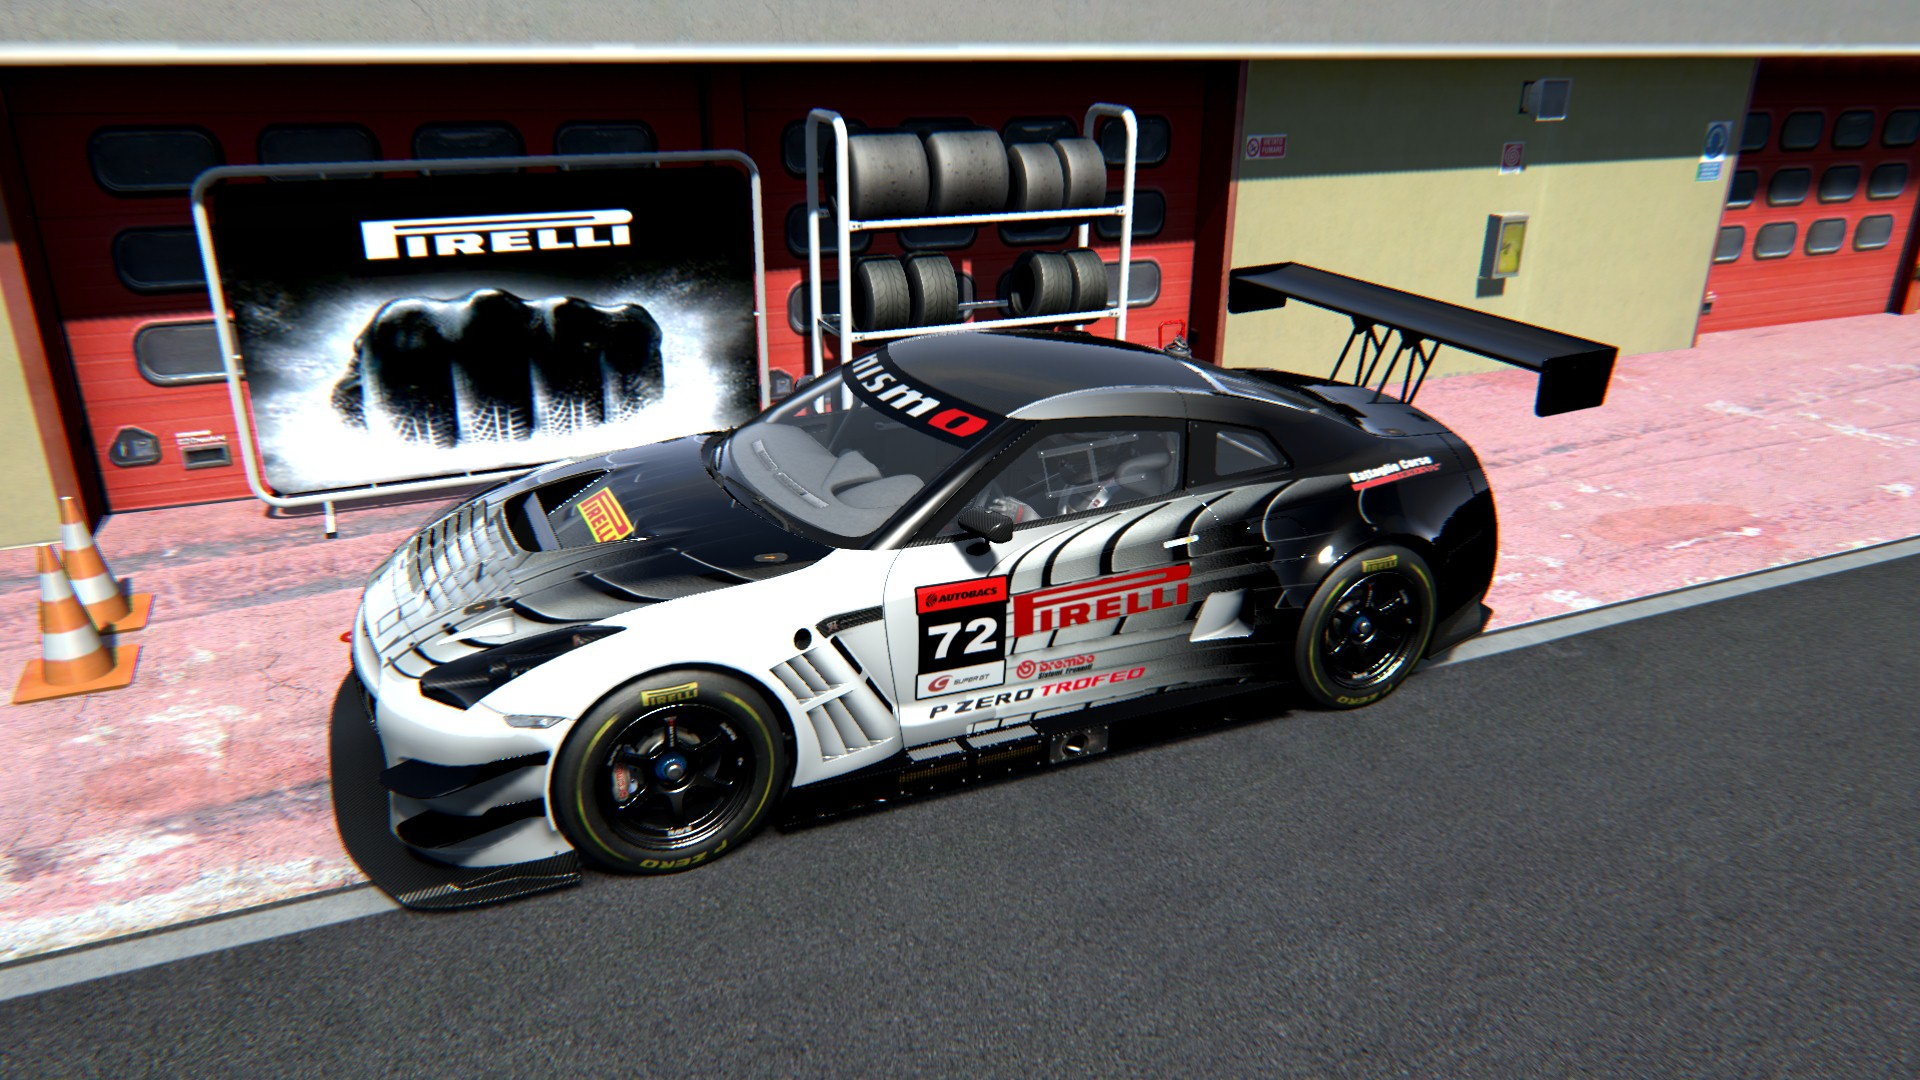 Screenshot_ks_nissan_gtr_gt3_mugello_19-4-115-23-33-25.jpg